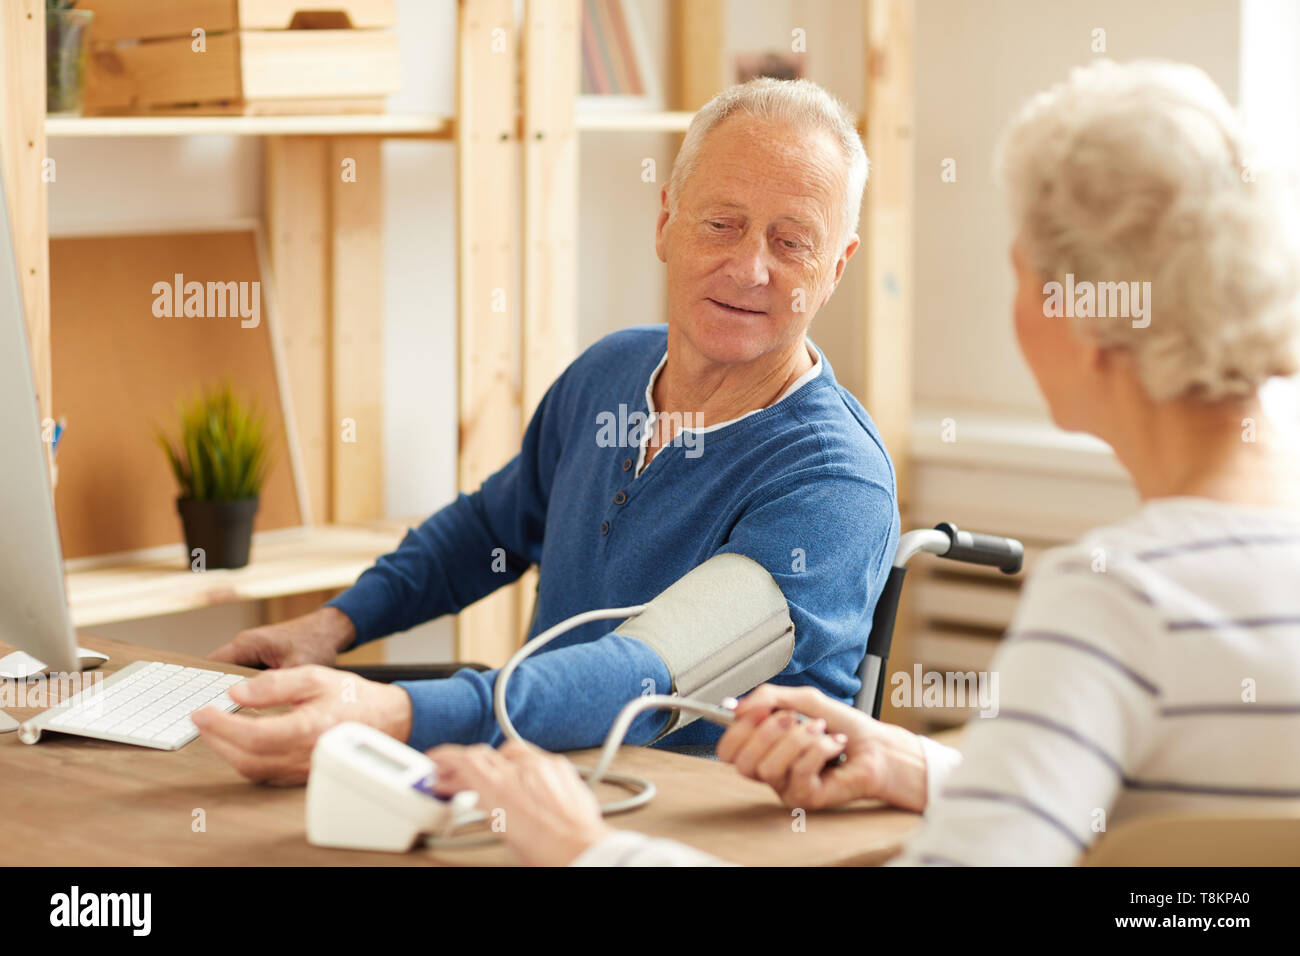 Checking Blood Pressure - Stock Image